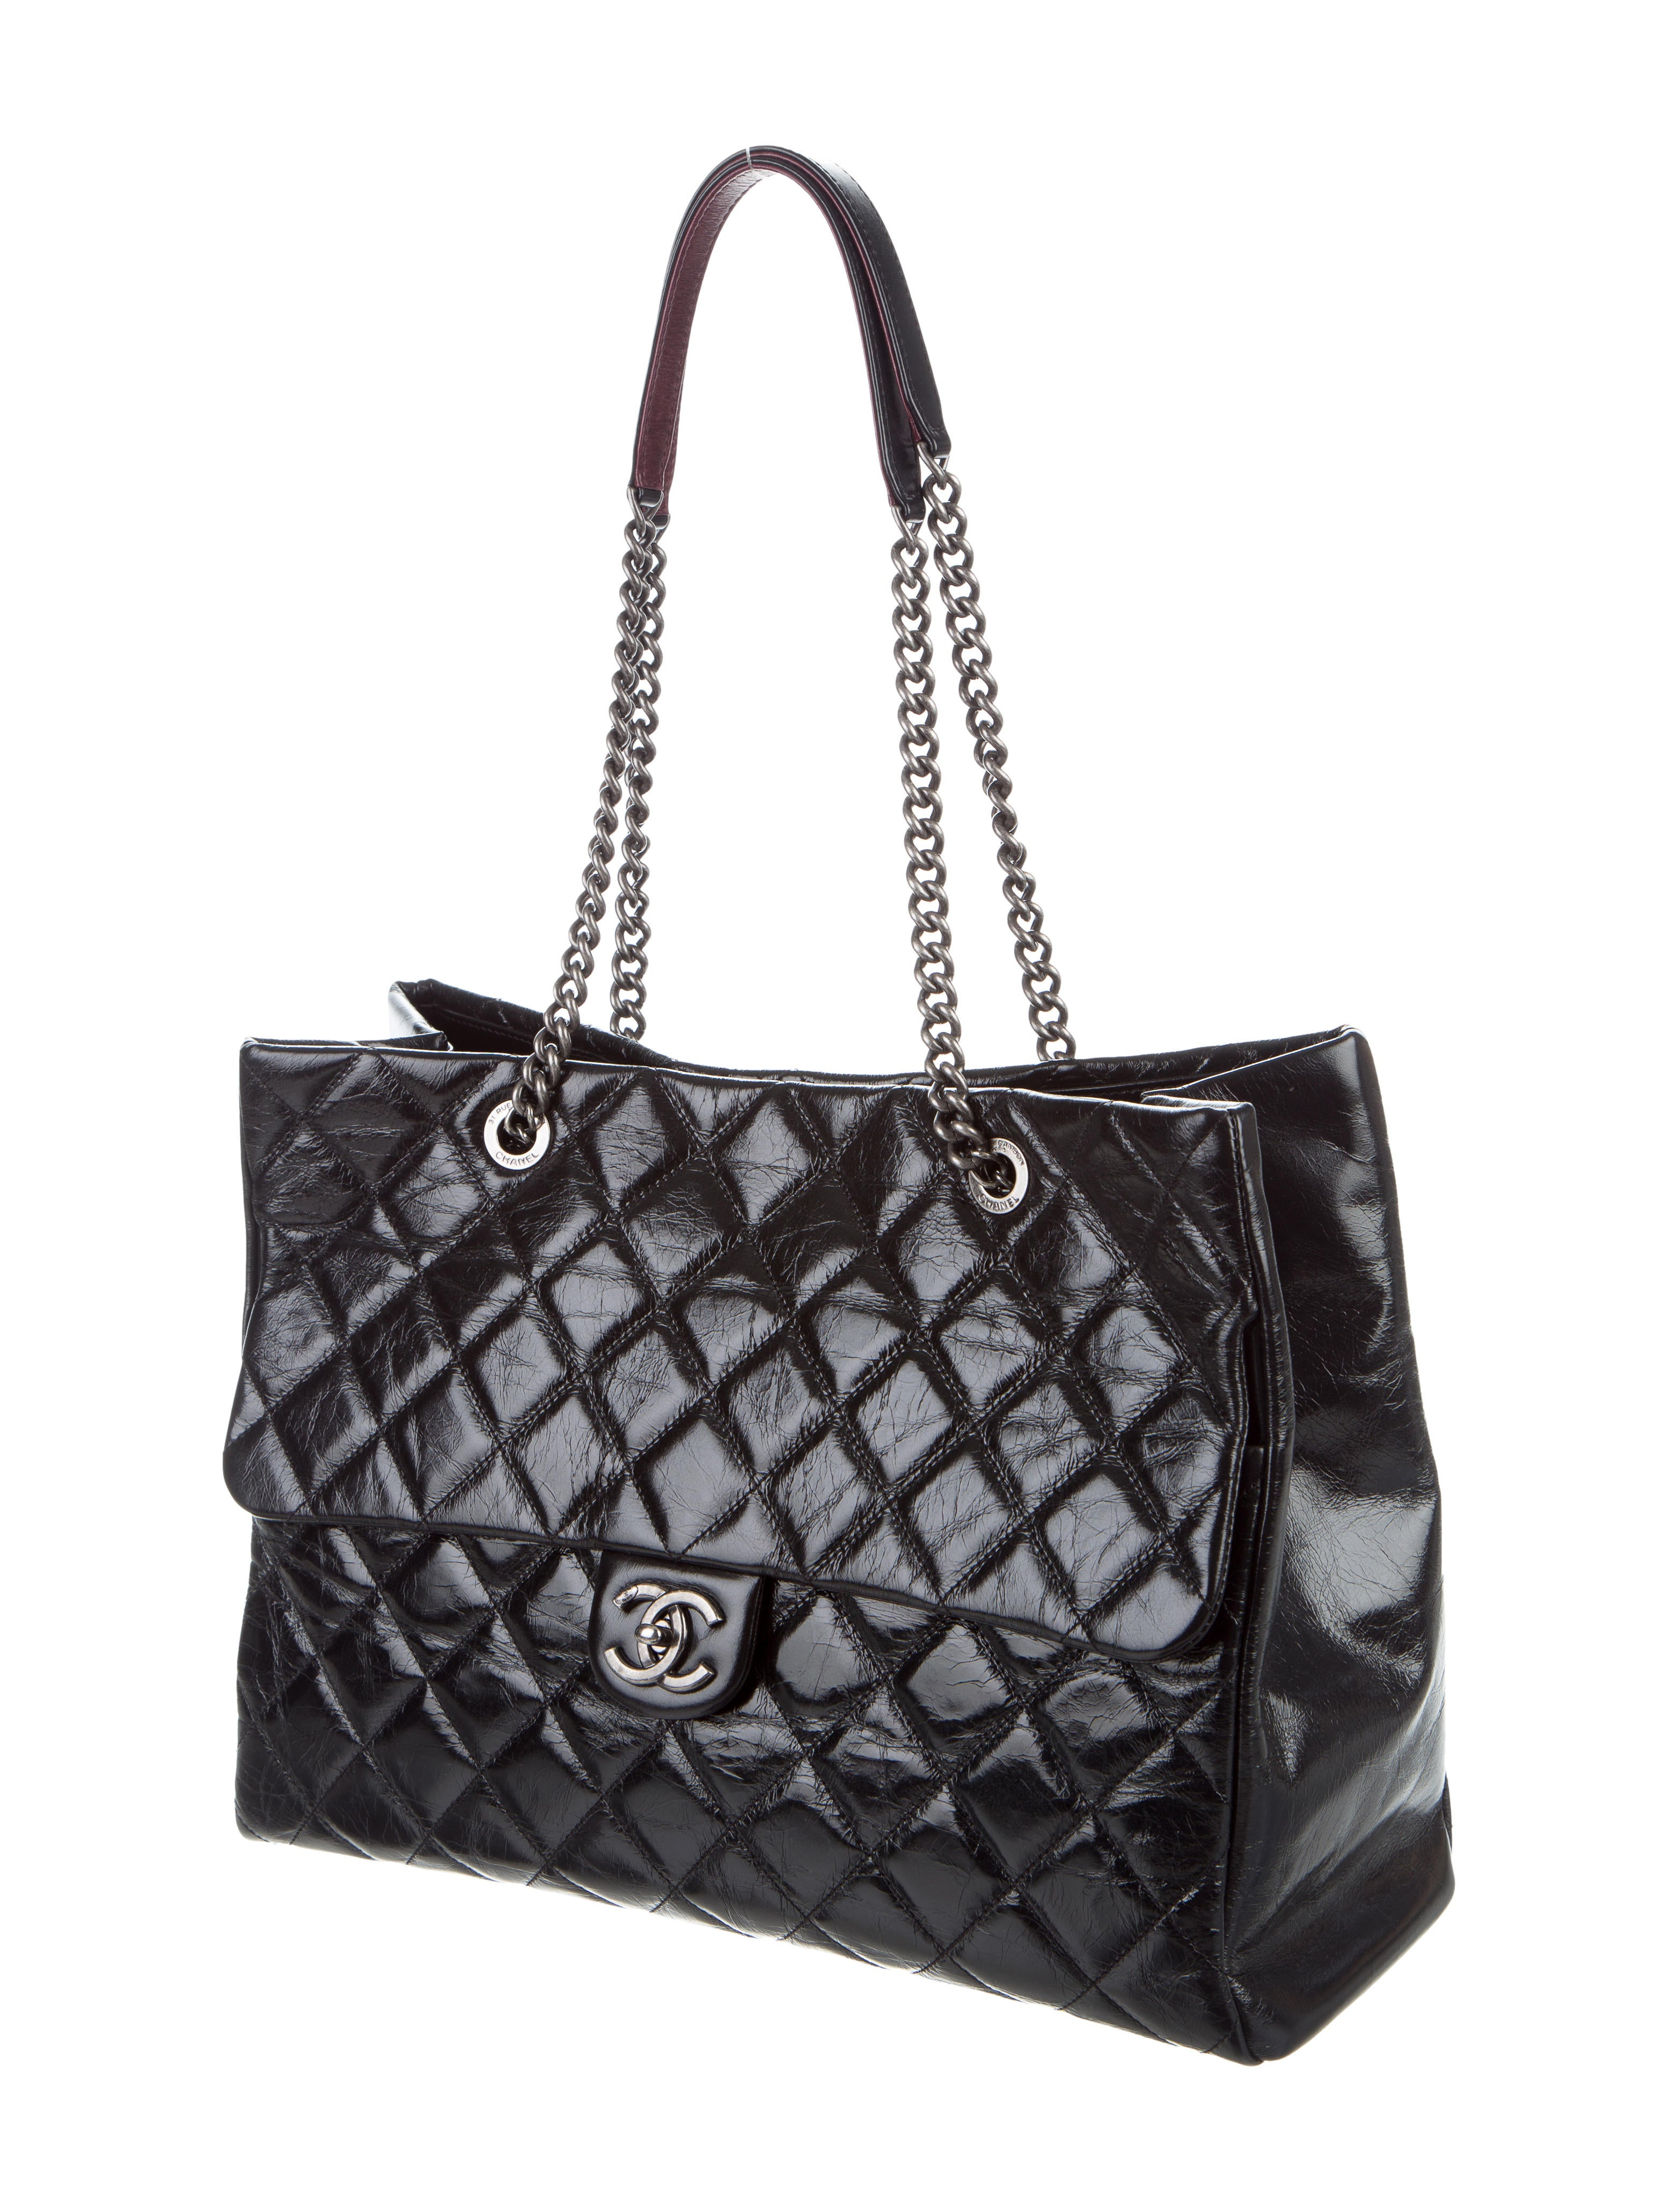 3d7295e7f24d9e Chanel Large Tote Handbags | Stanford Center for Opportunity Policy ...